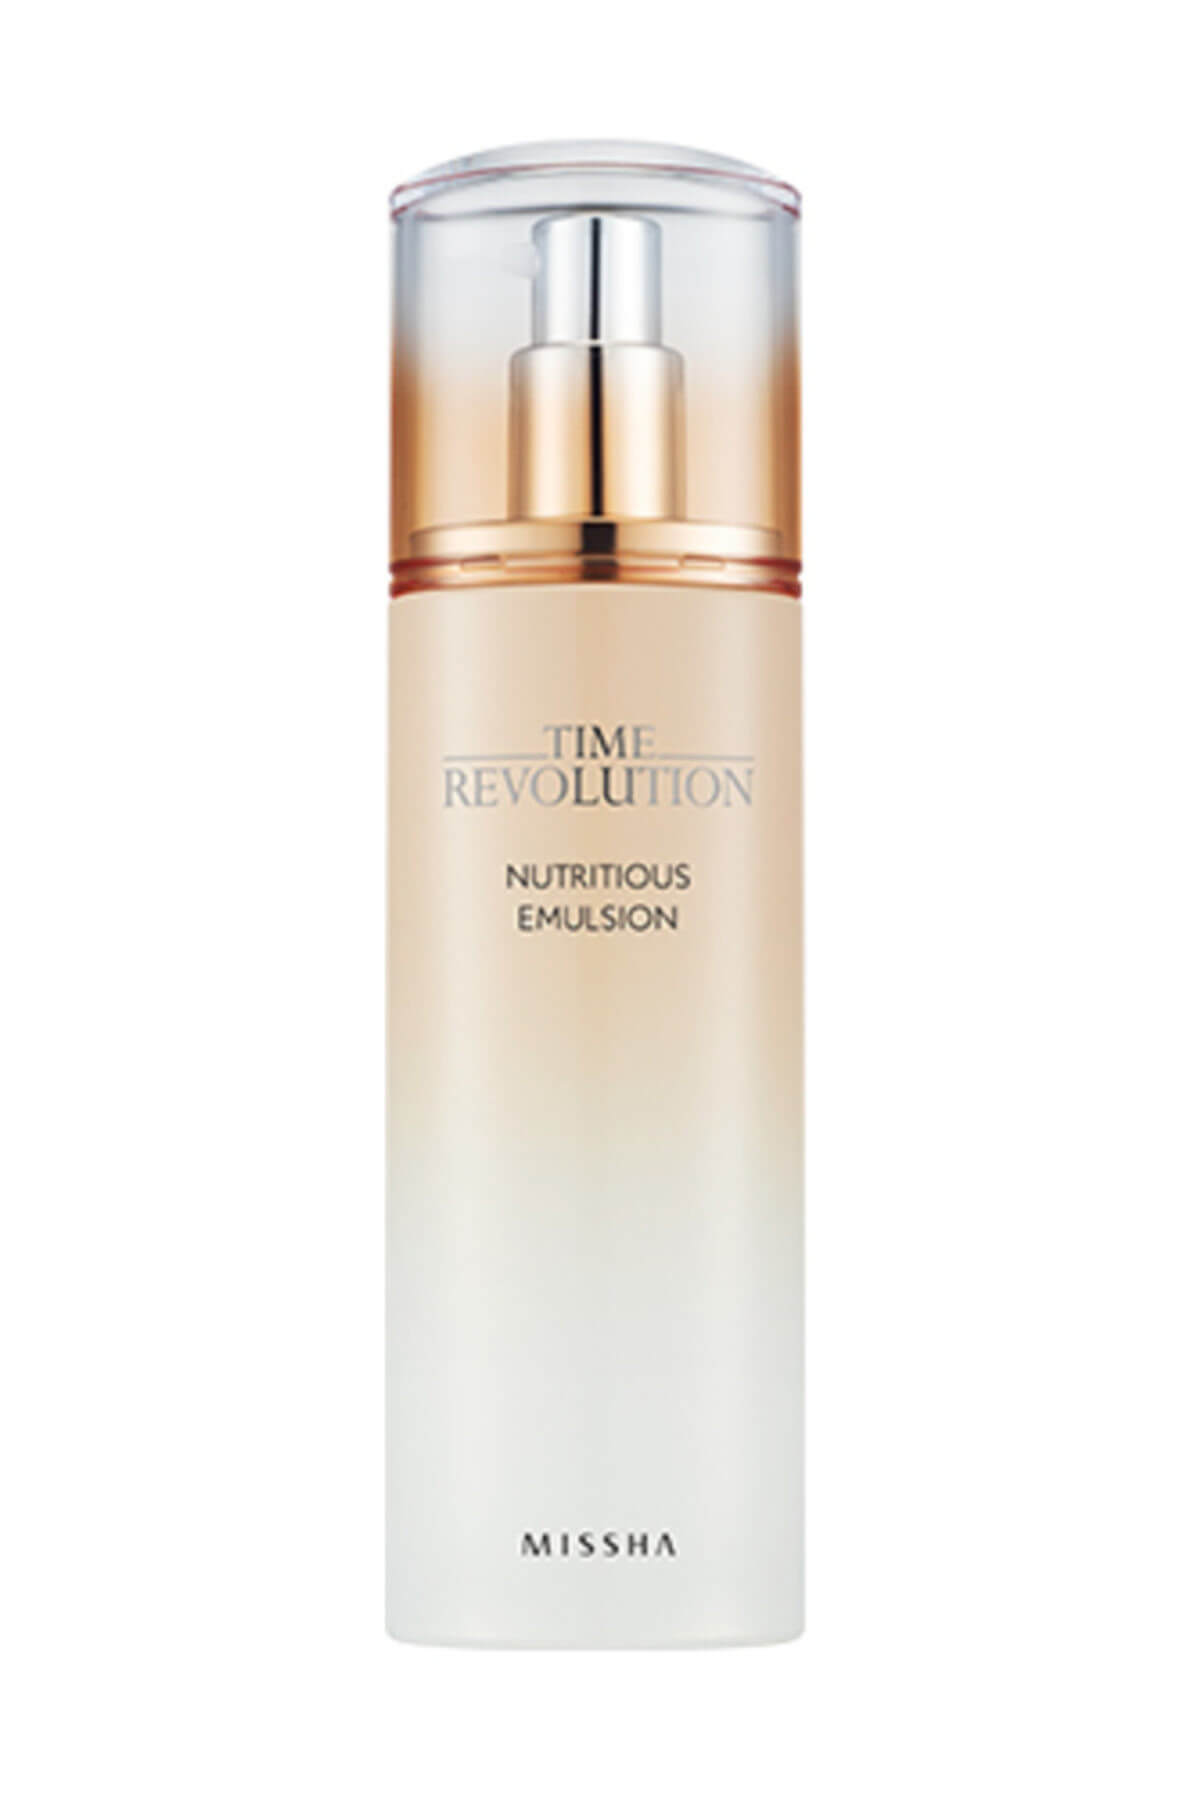 Missha Emülsiyon   Time Revolution Nutritious Emulsion 130ml